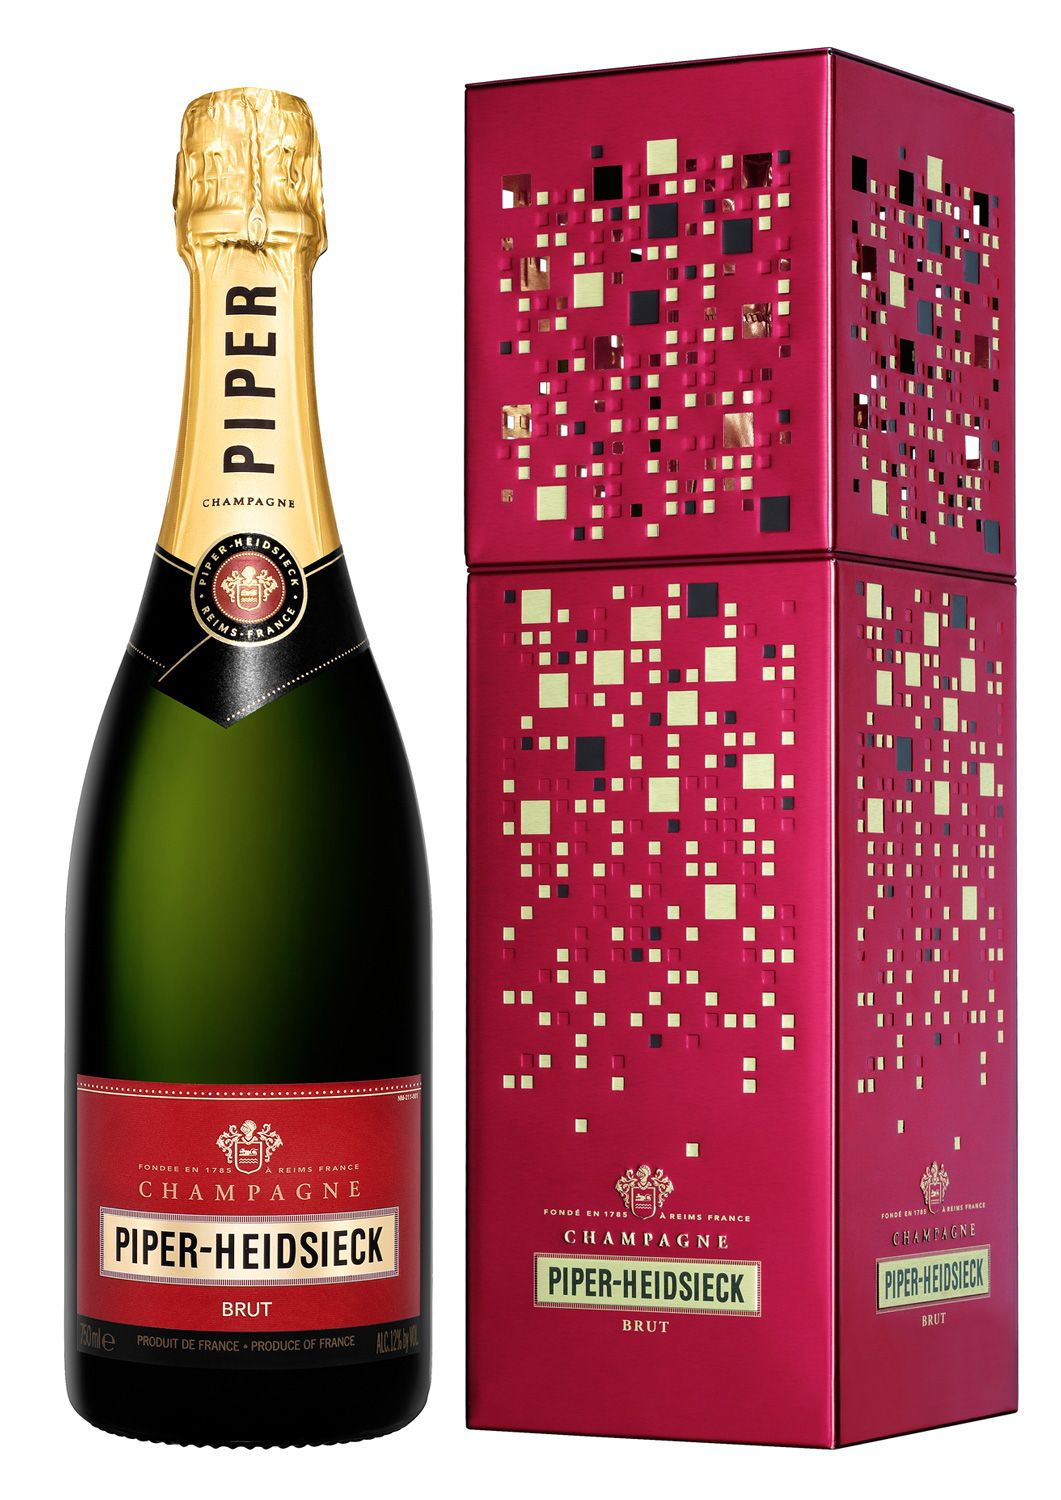 Champagne Piper Heidsieck Fashionista Champagne Bottle Champagne Alcoholic Drinks